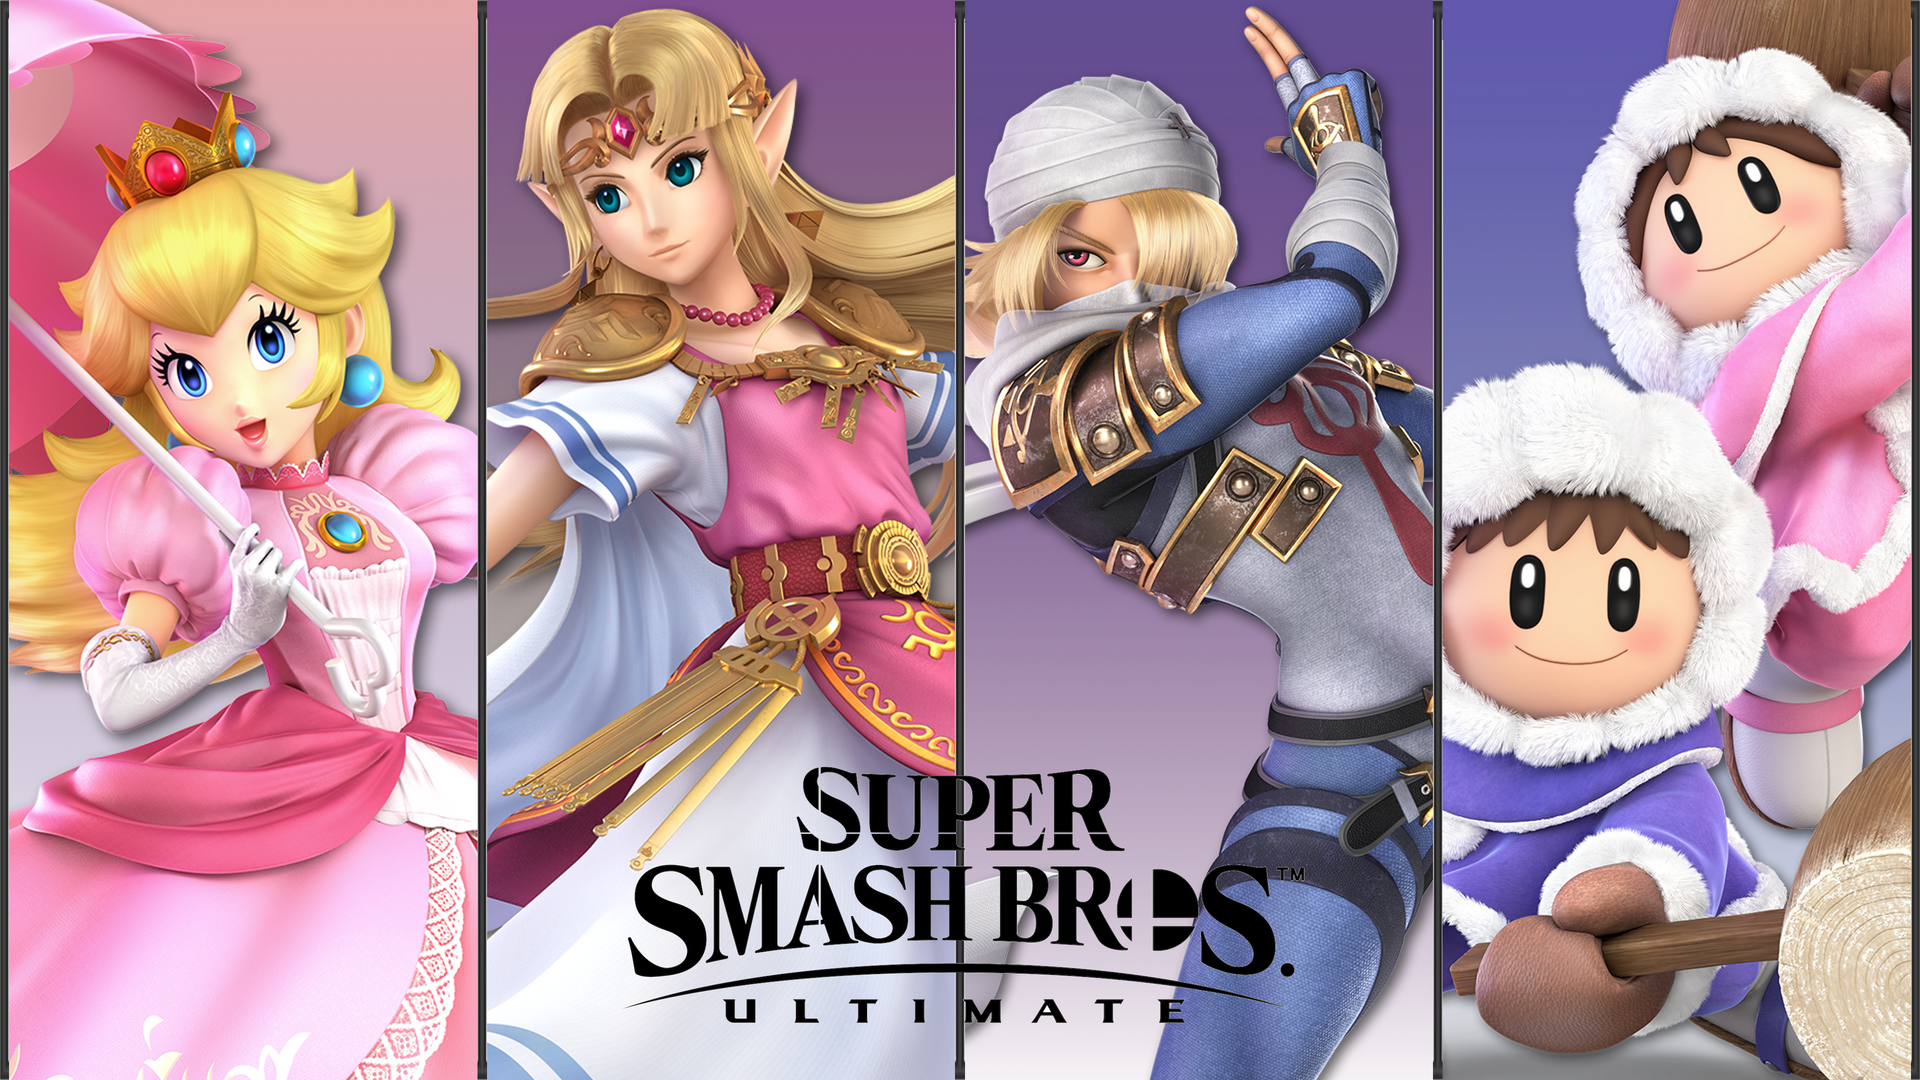 Super Smash Bros Ultimate Wallpaper 4 By 64smashmaster3ds On